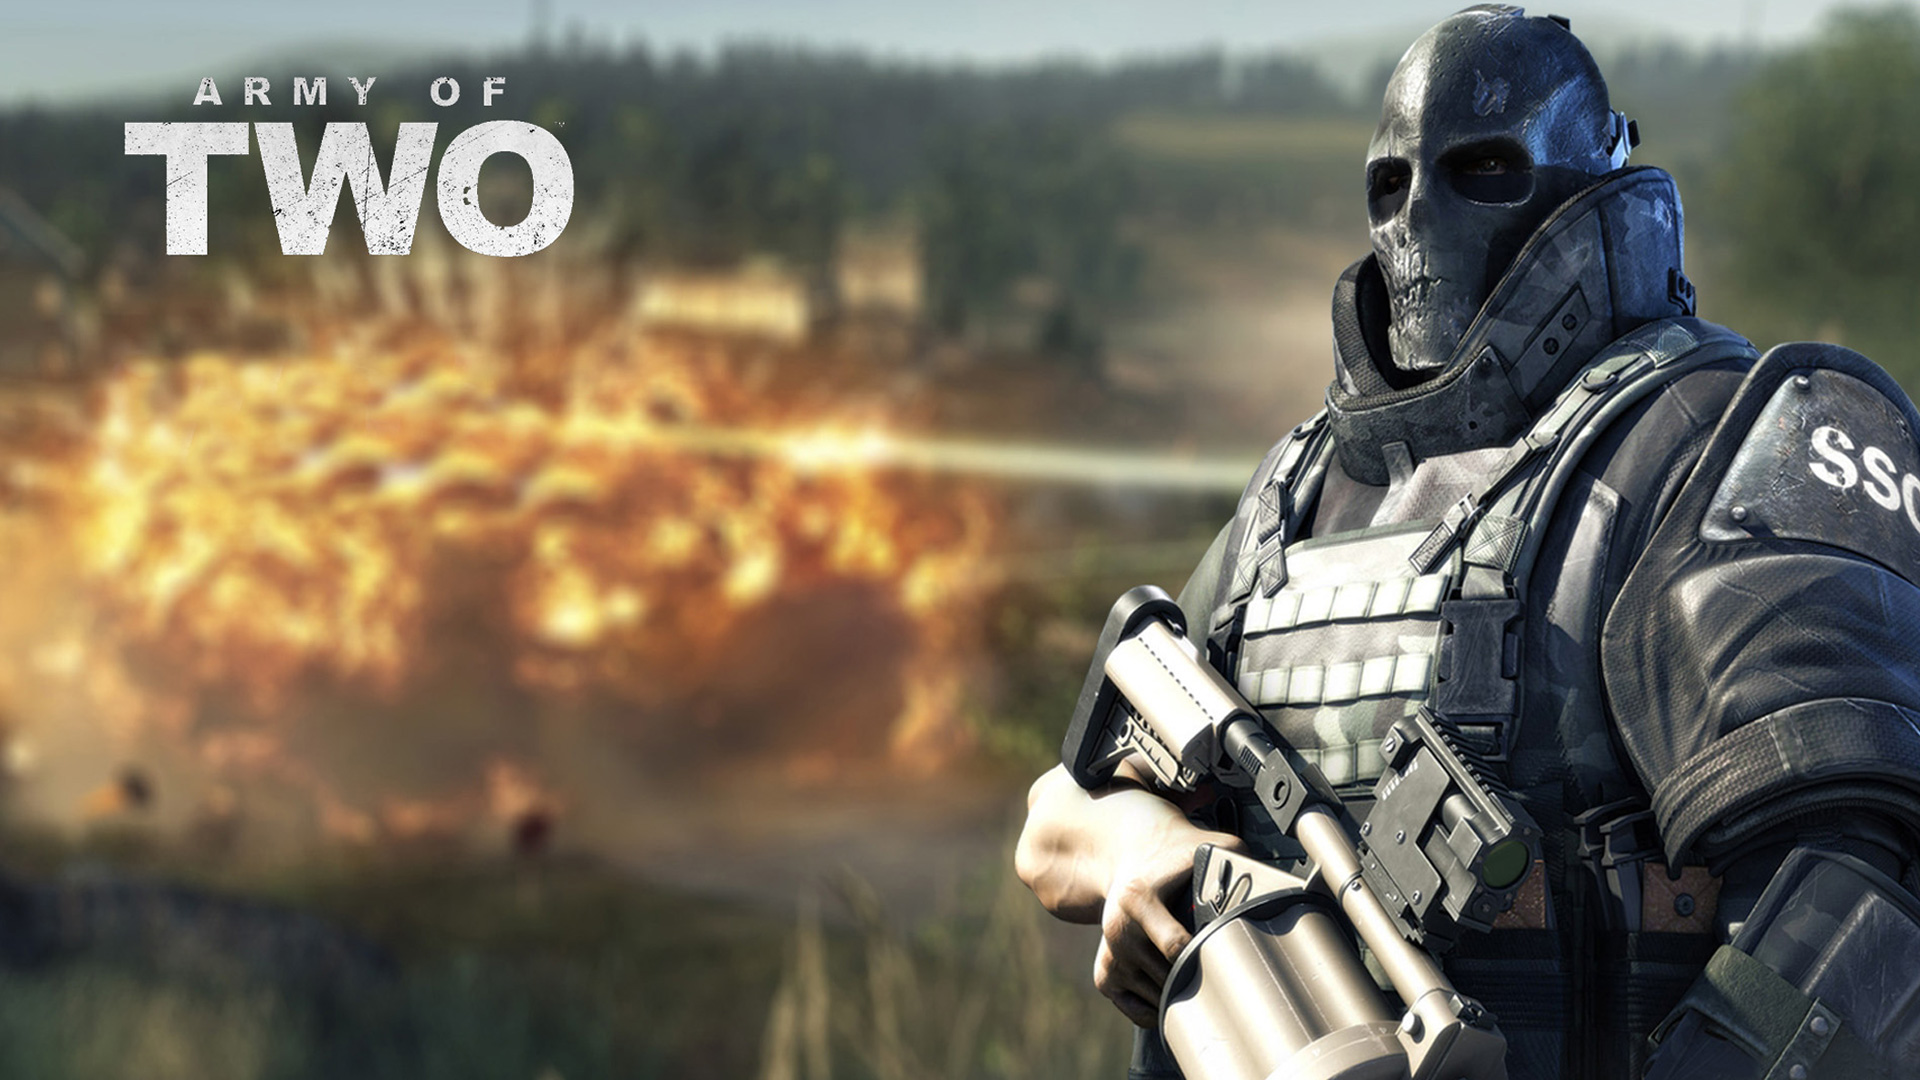 Army of Two Wallpaper in 1920x1080